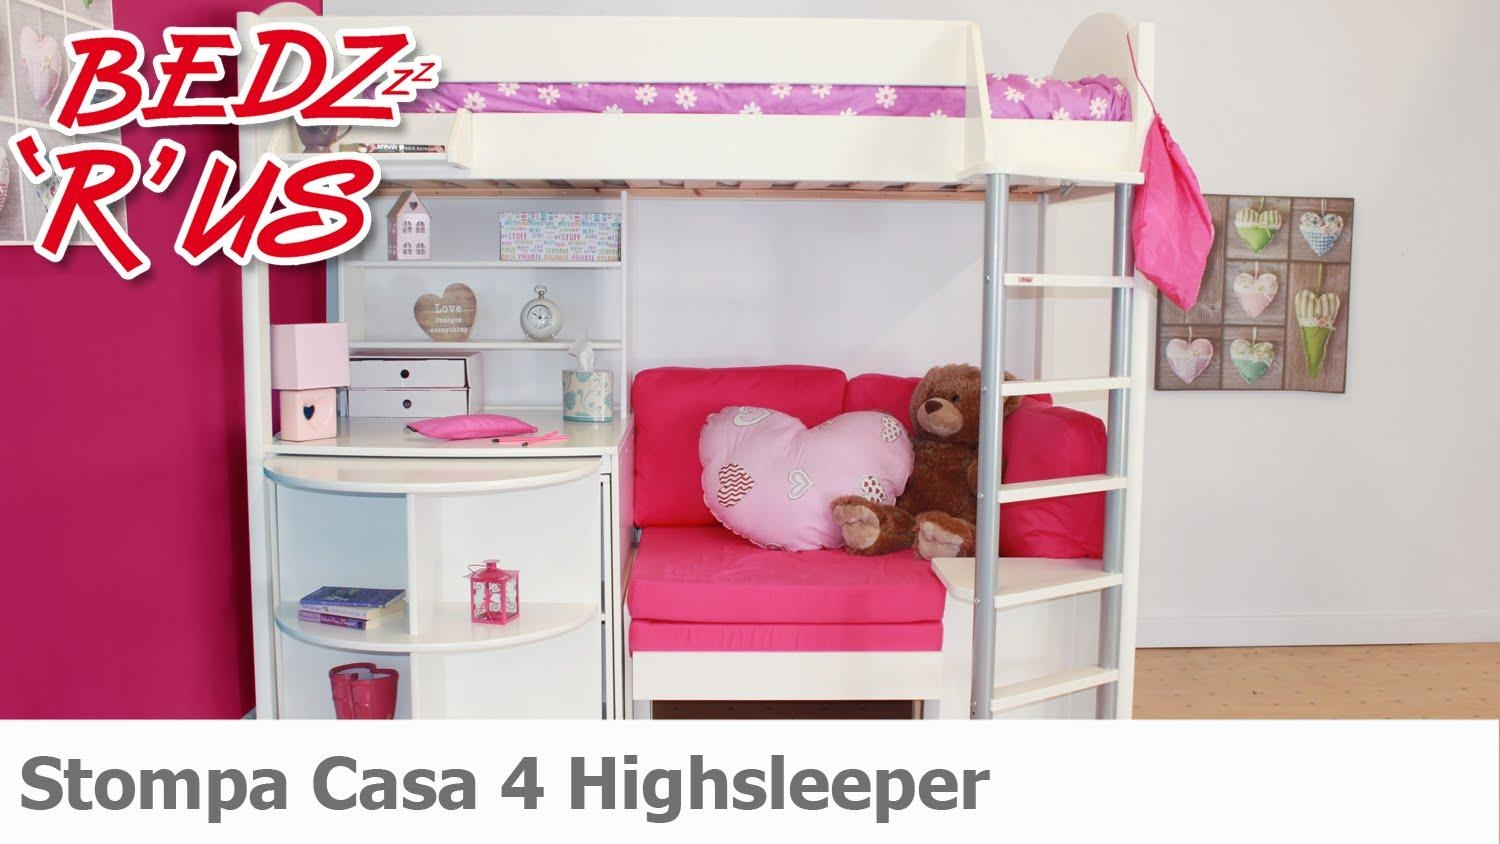 Stompa Casa 4 Highsleeper Bed – Bedzrus – Youtube With Regard To High Sleeper With Desk And Sofa (View 12 of 20)